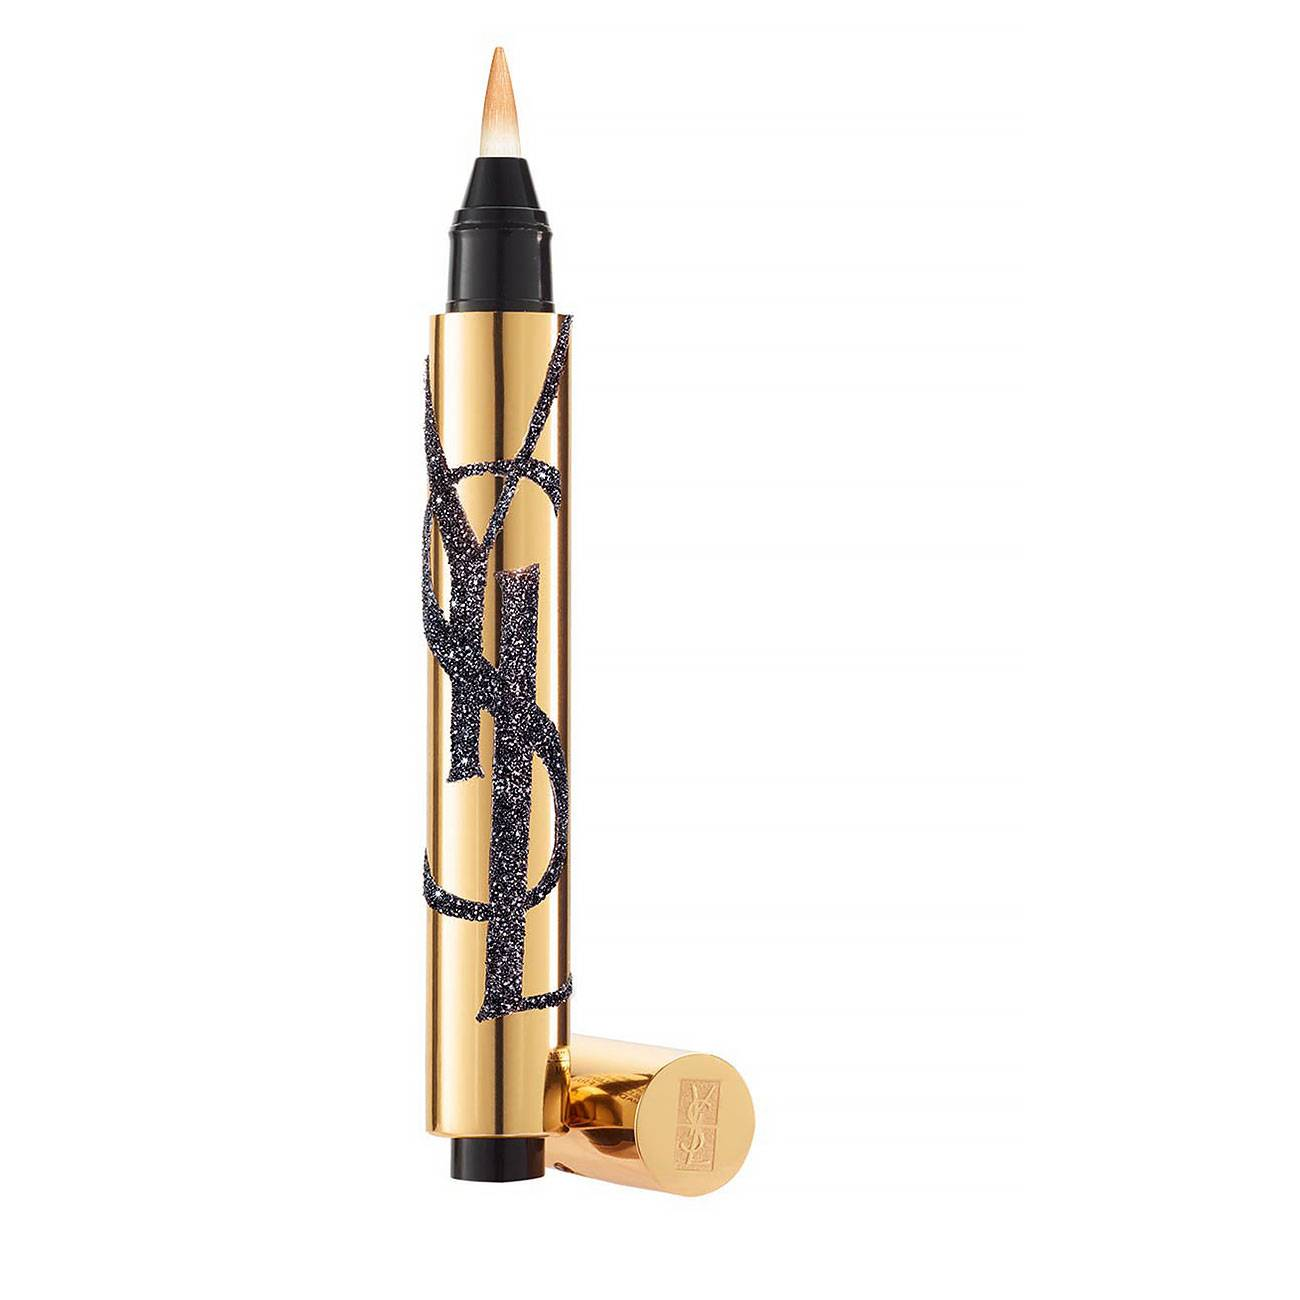 Ysl L7219900 Touche Eclat Concealer Monogram Edition Nu00b002 Ivoire 2.5ml 2.5ml Yves Saint Laurent imagine 2021 bestvalue.eu